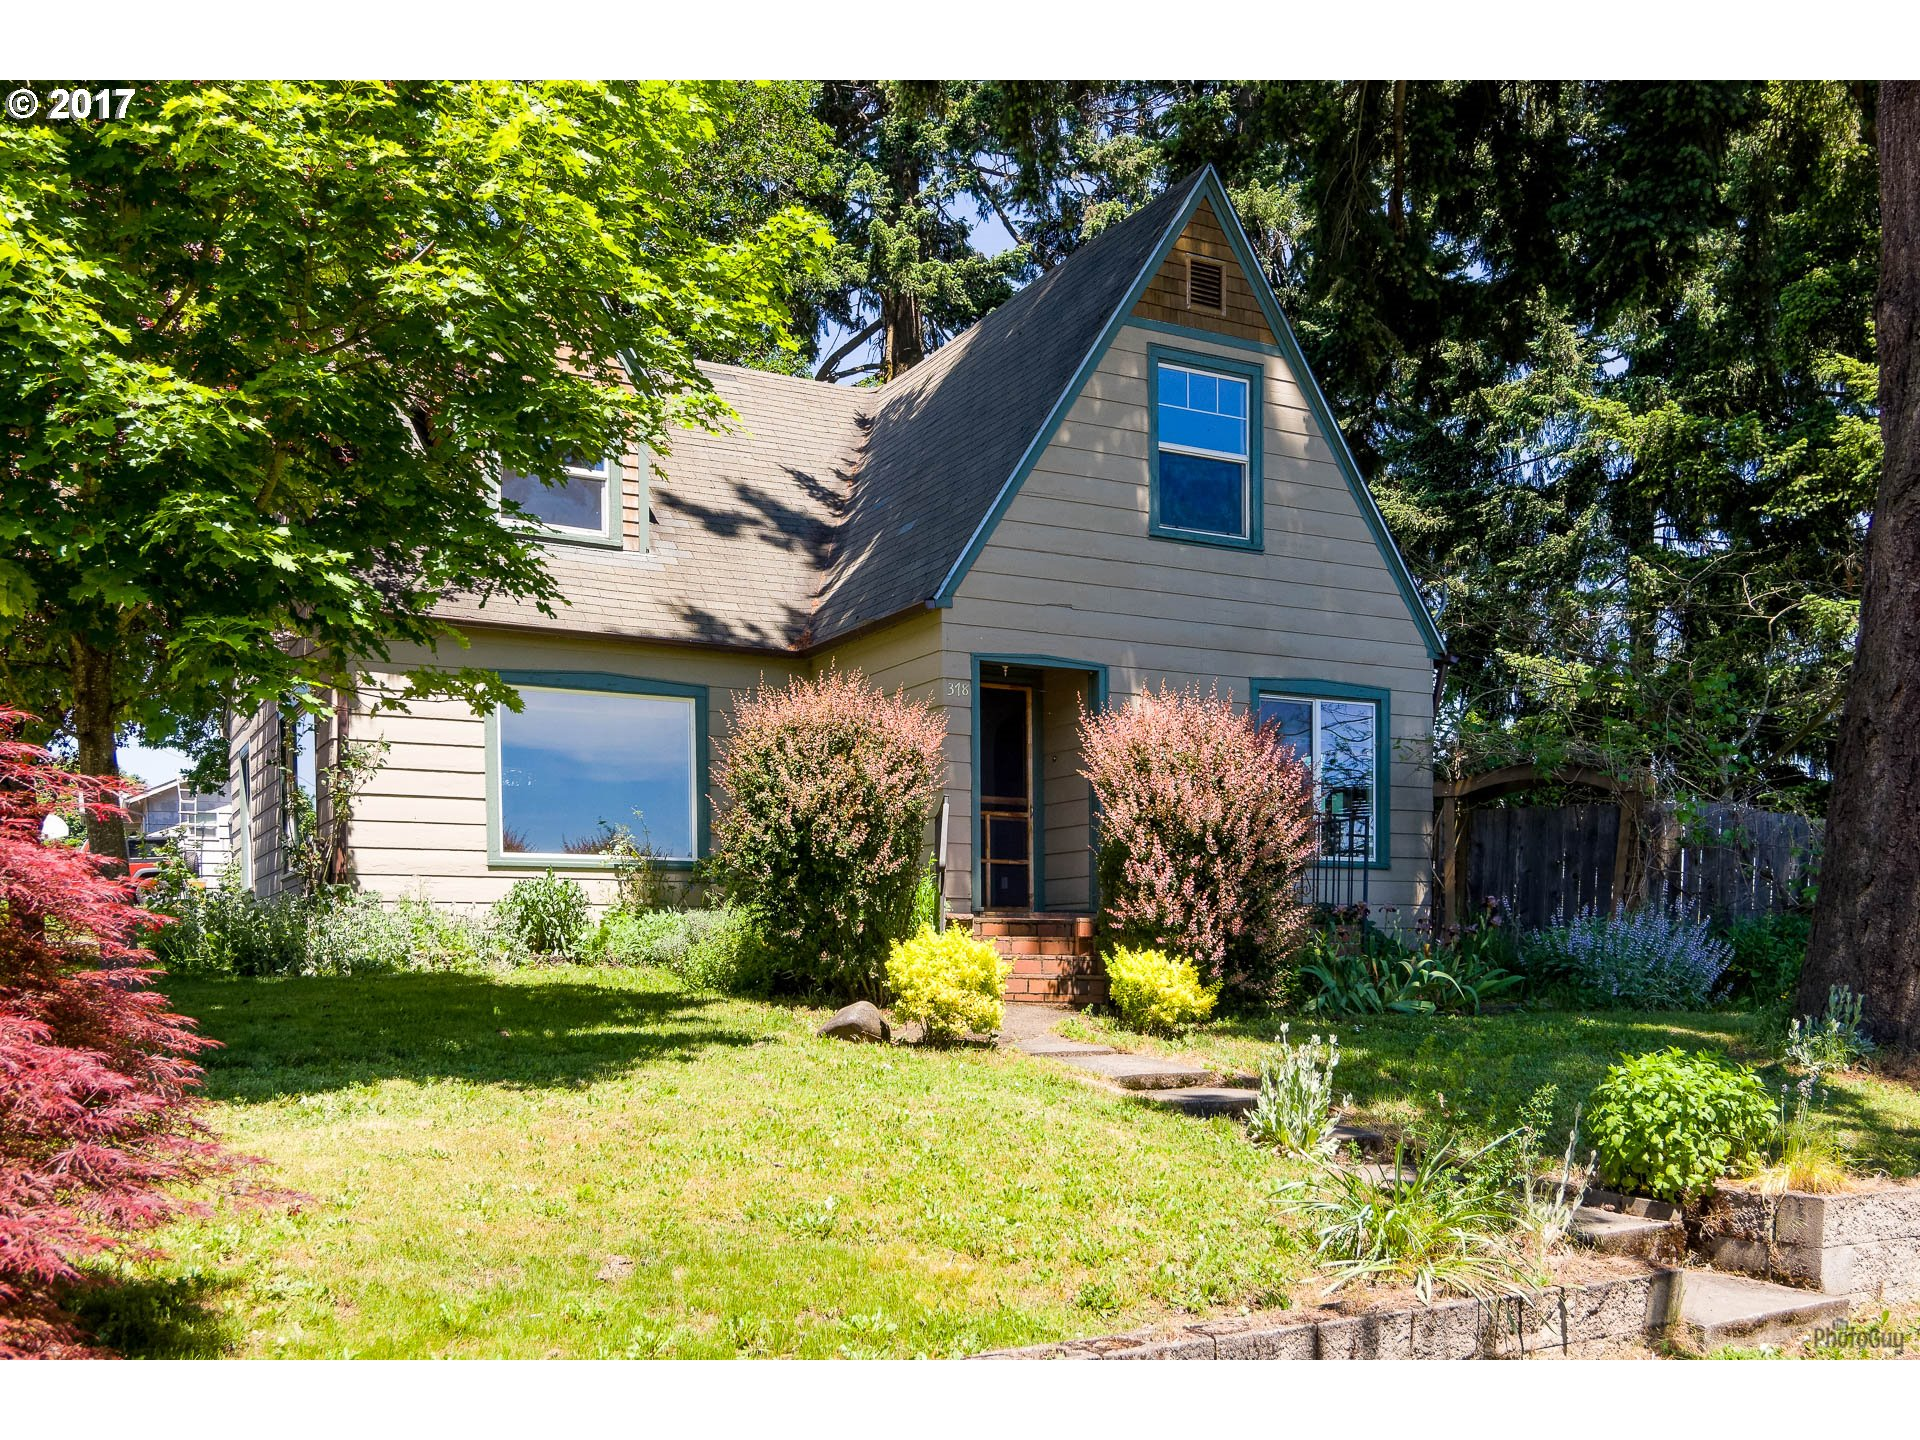 378 N 1ST ST, Creswell, OR 97426